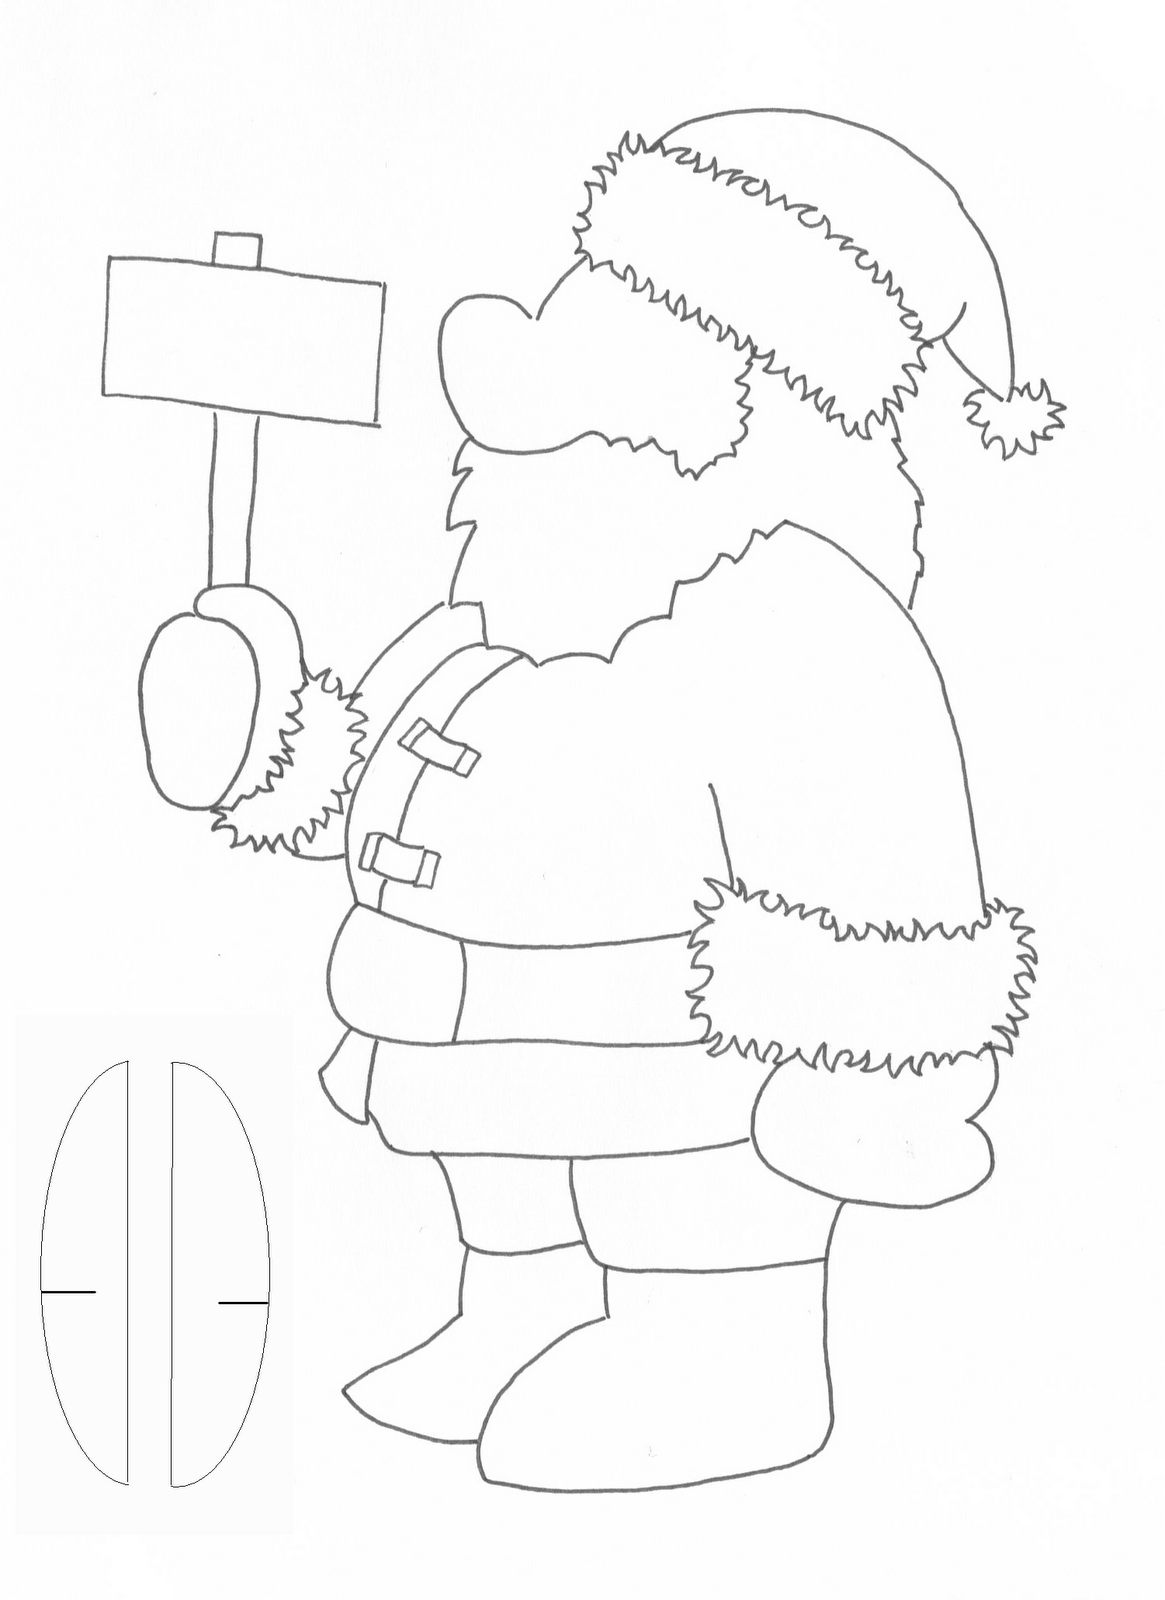 ... santa cut out template 465 x 640 jpeg 21kb using the template cut our